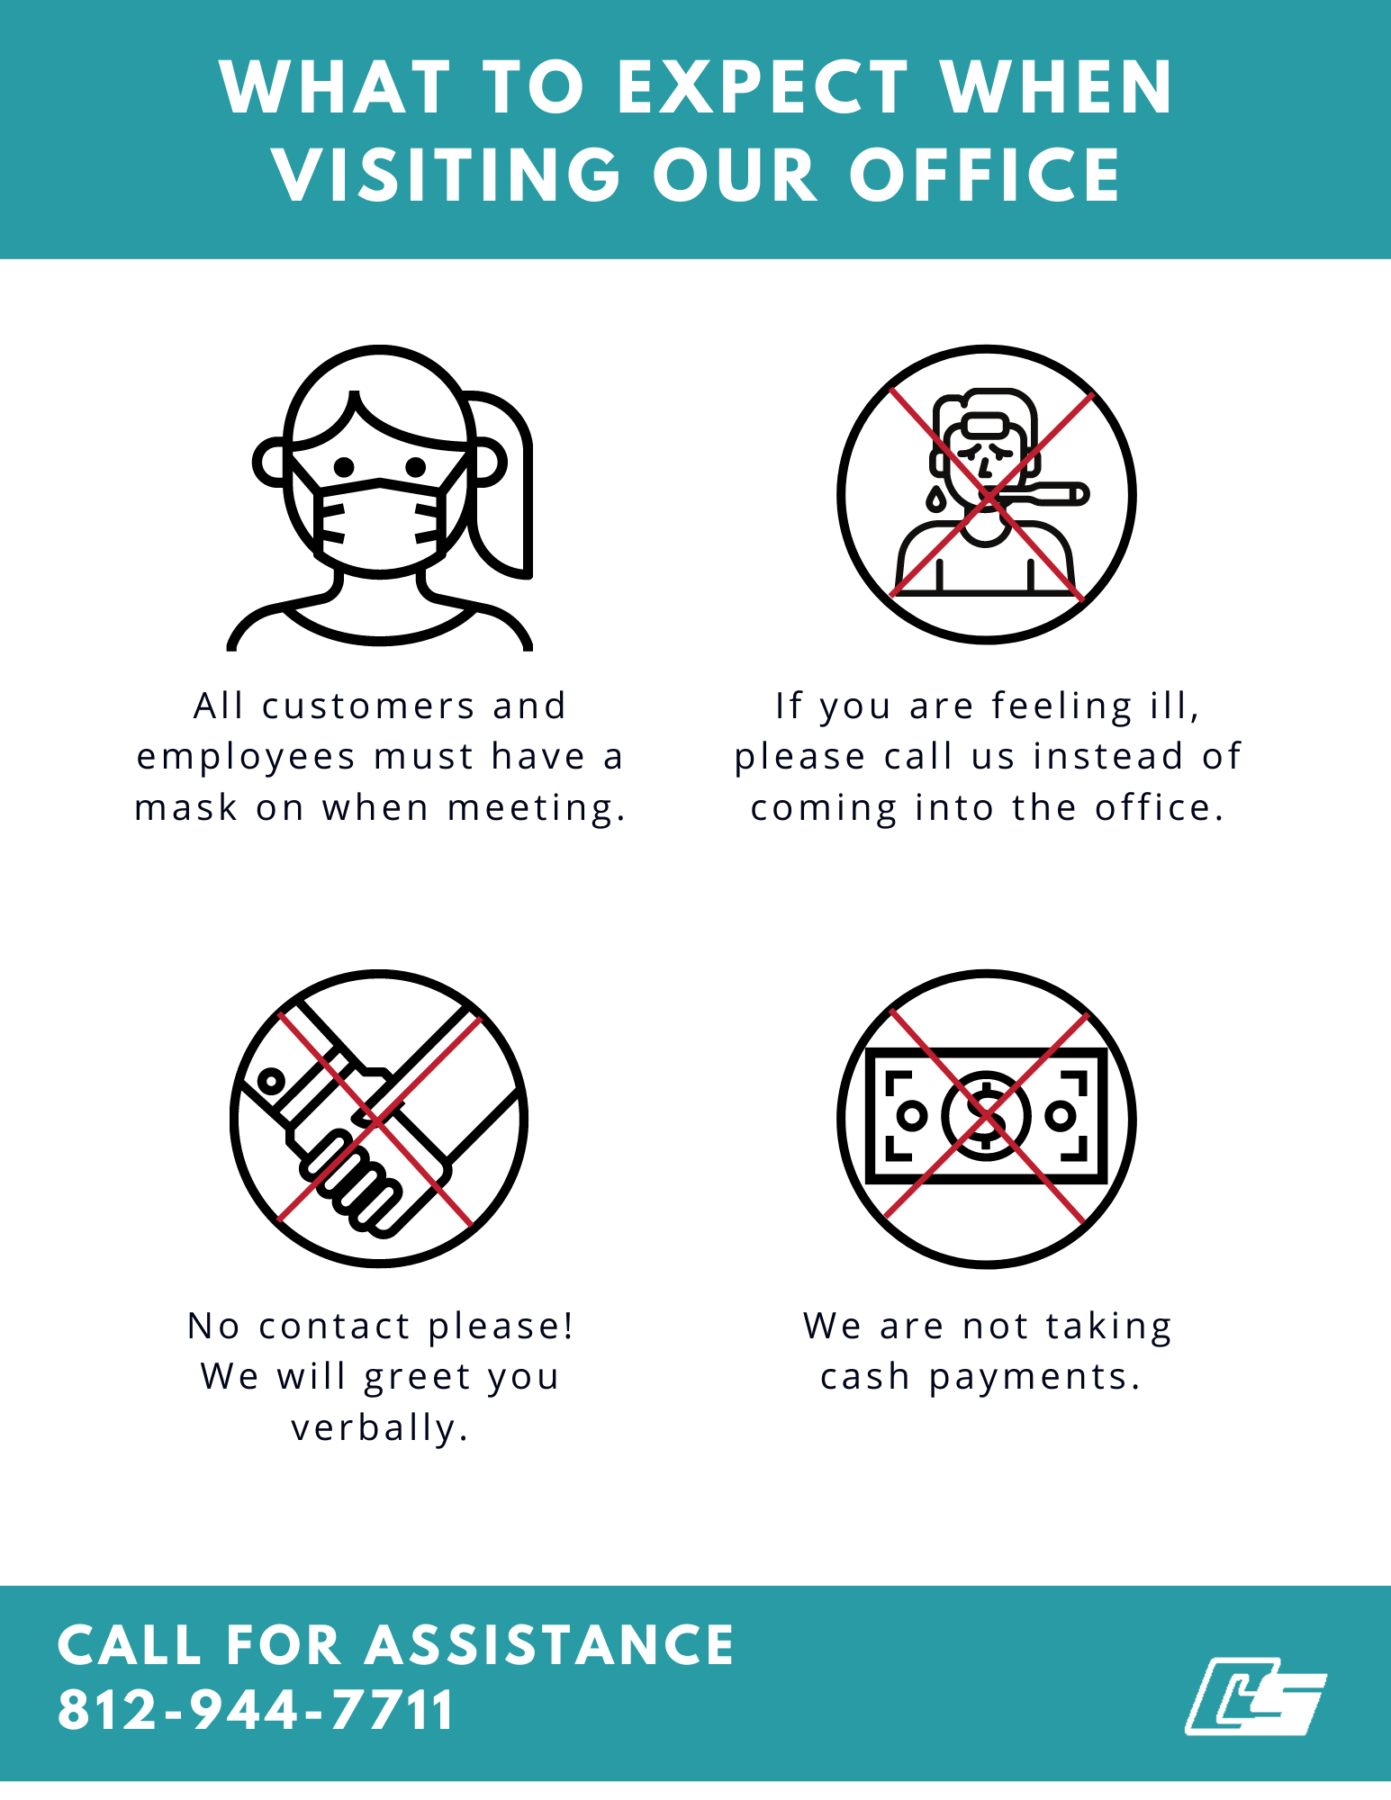 What to expect when visiting our office: All customers and employees will be masked. If you are feeling ill, please call. No contact, no cash payments